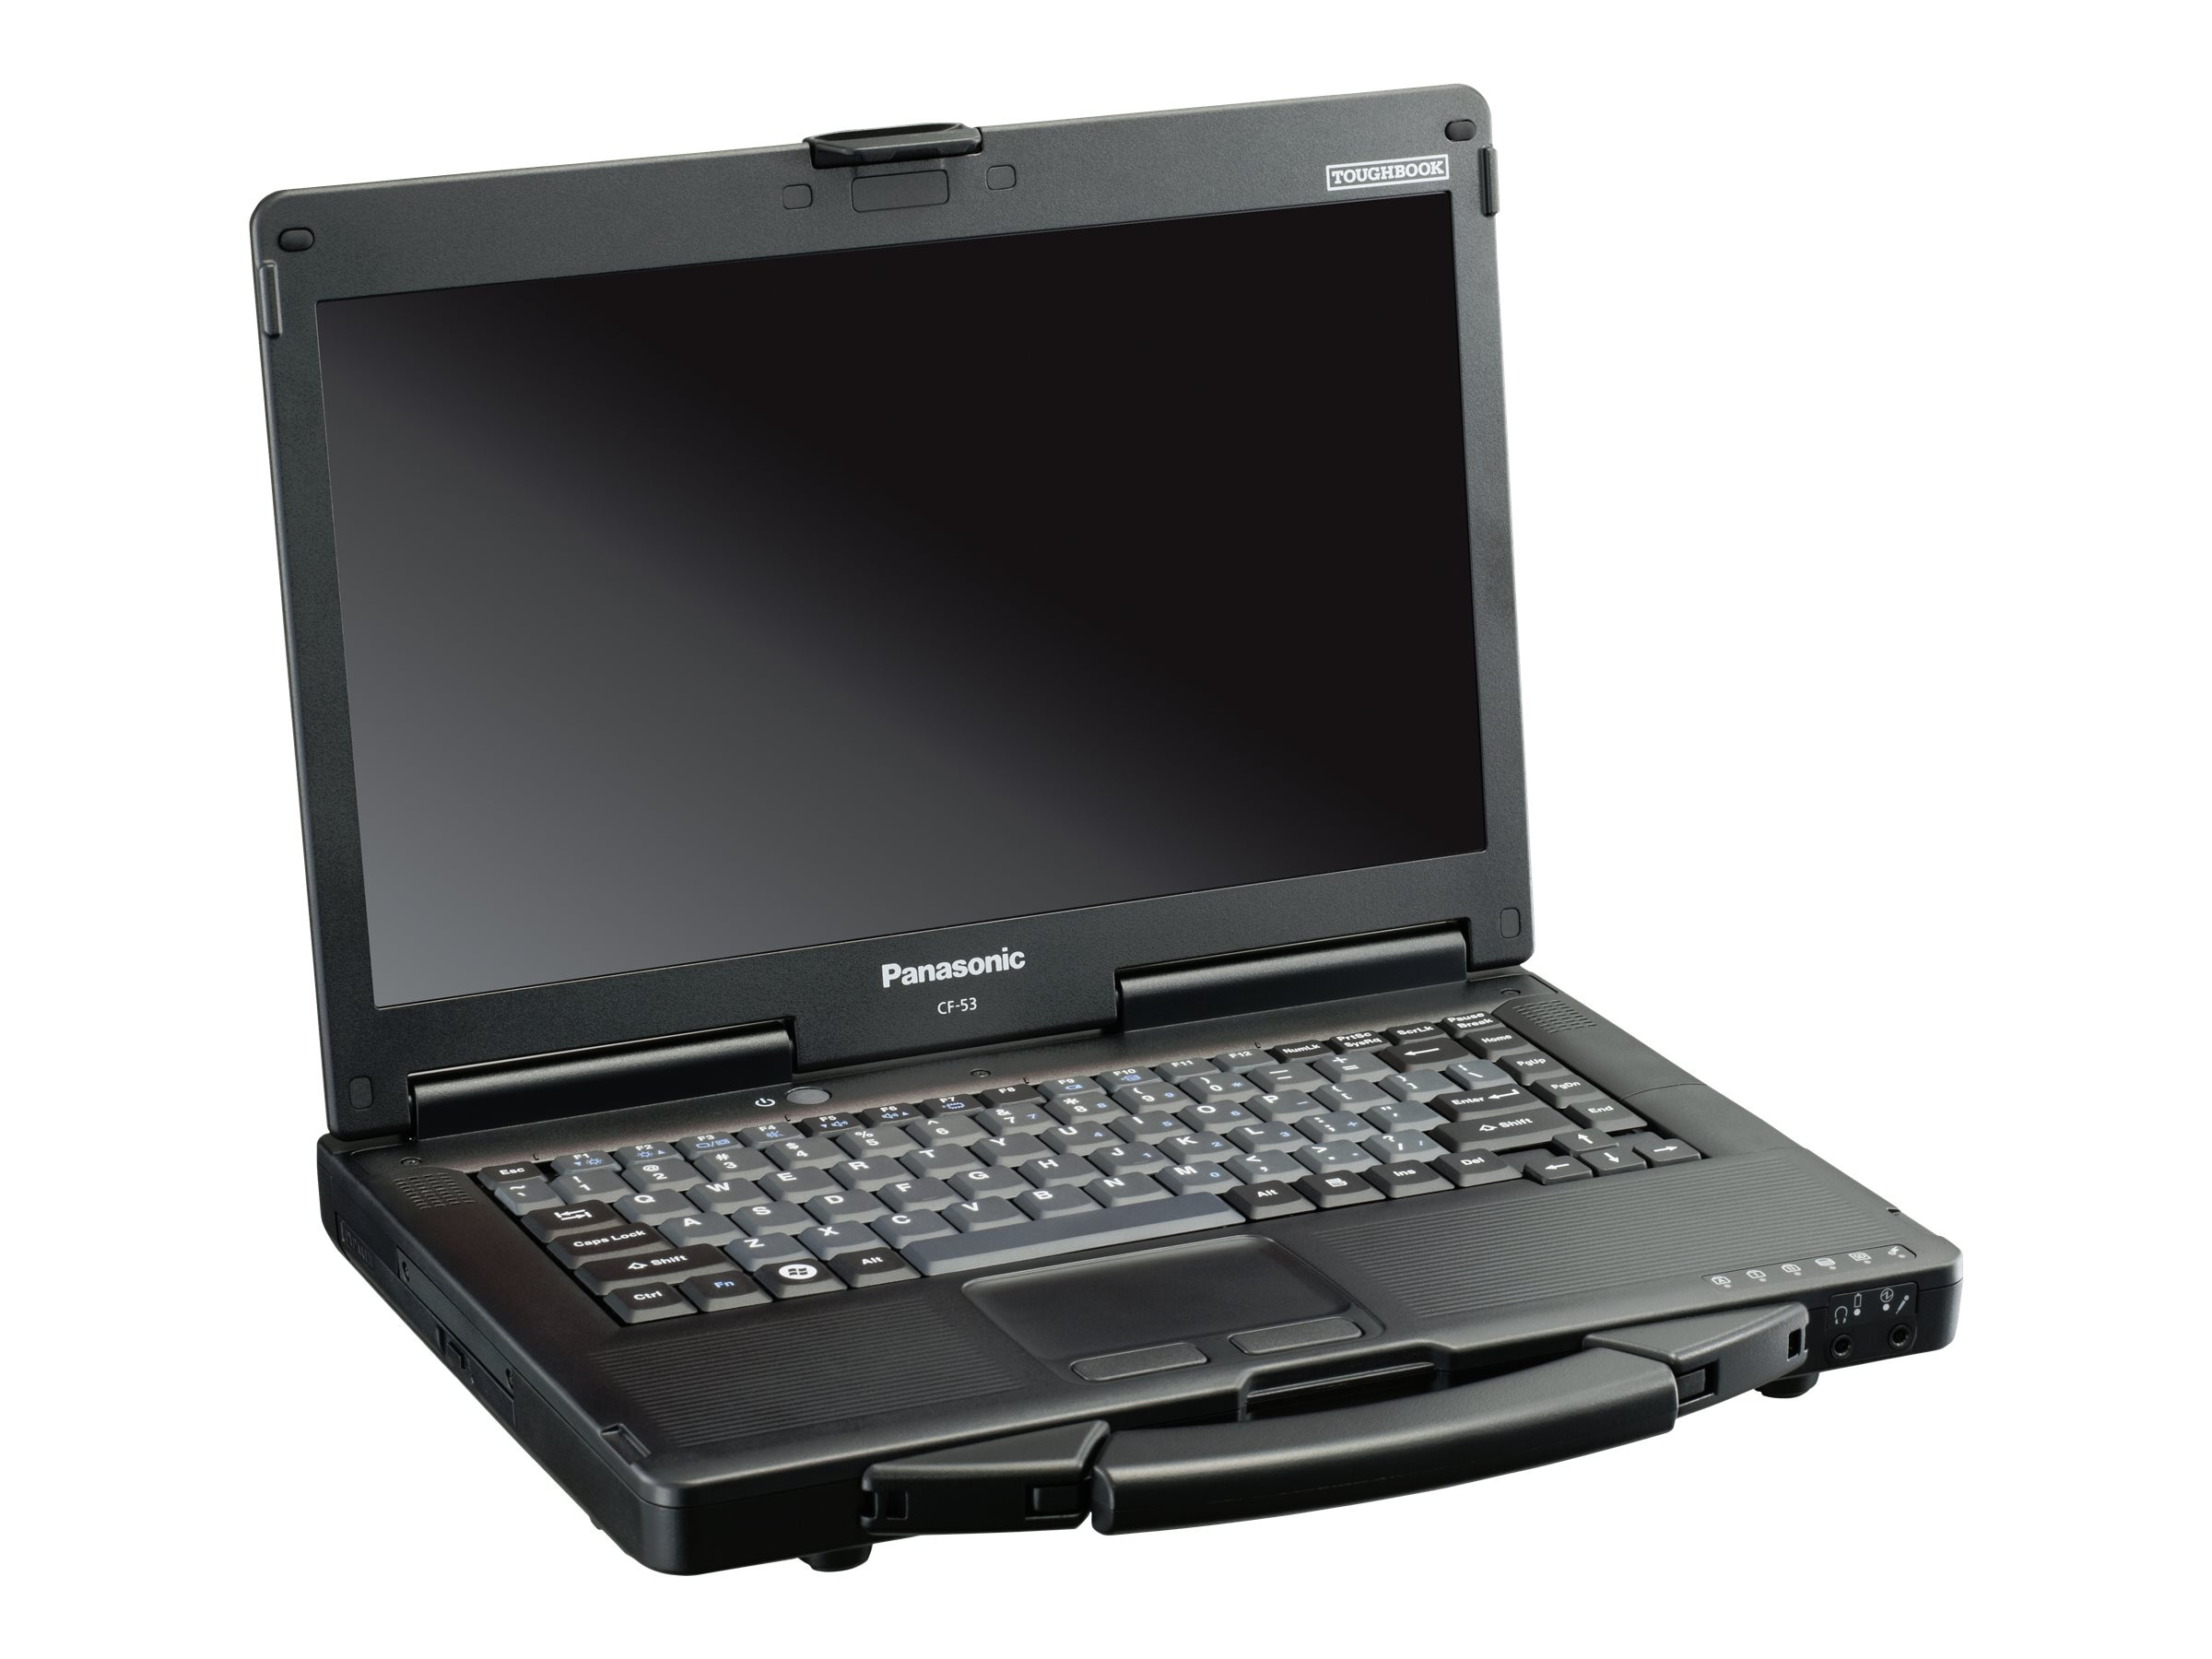 Panasonic Toughbook 53 2GHz Core i5 14in display, CF-532ALBYNM